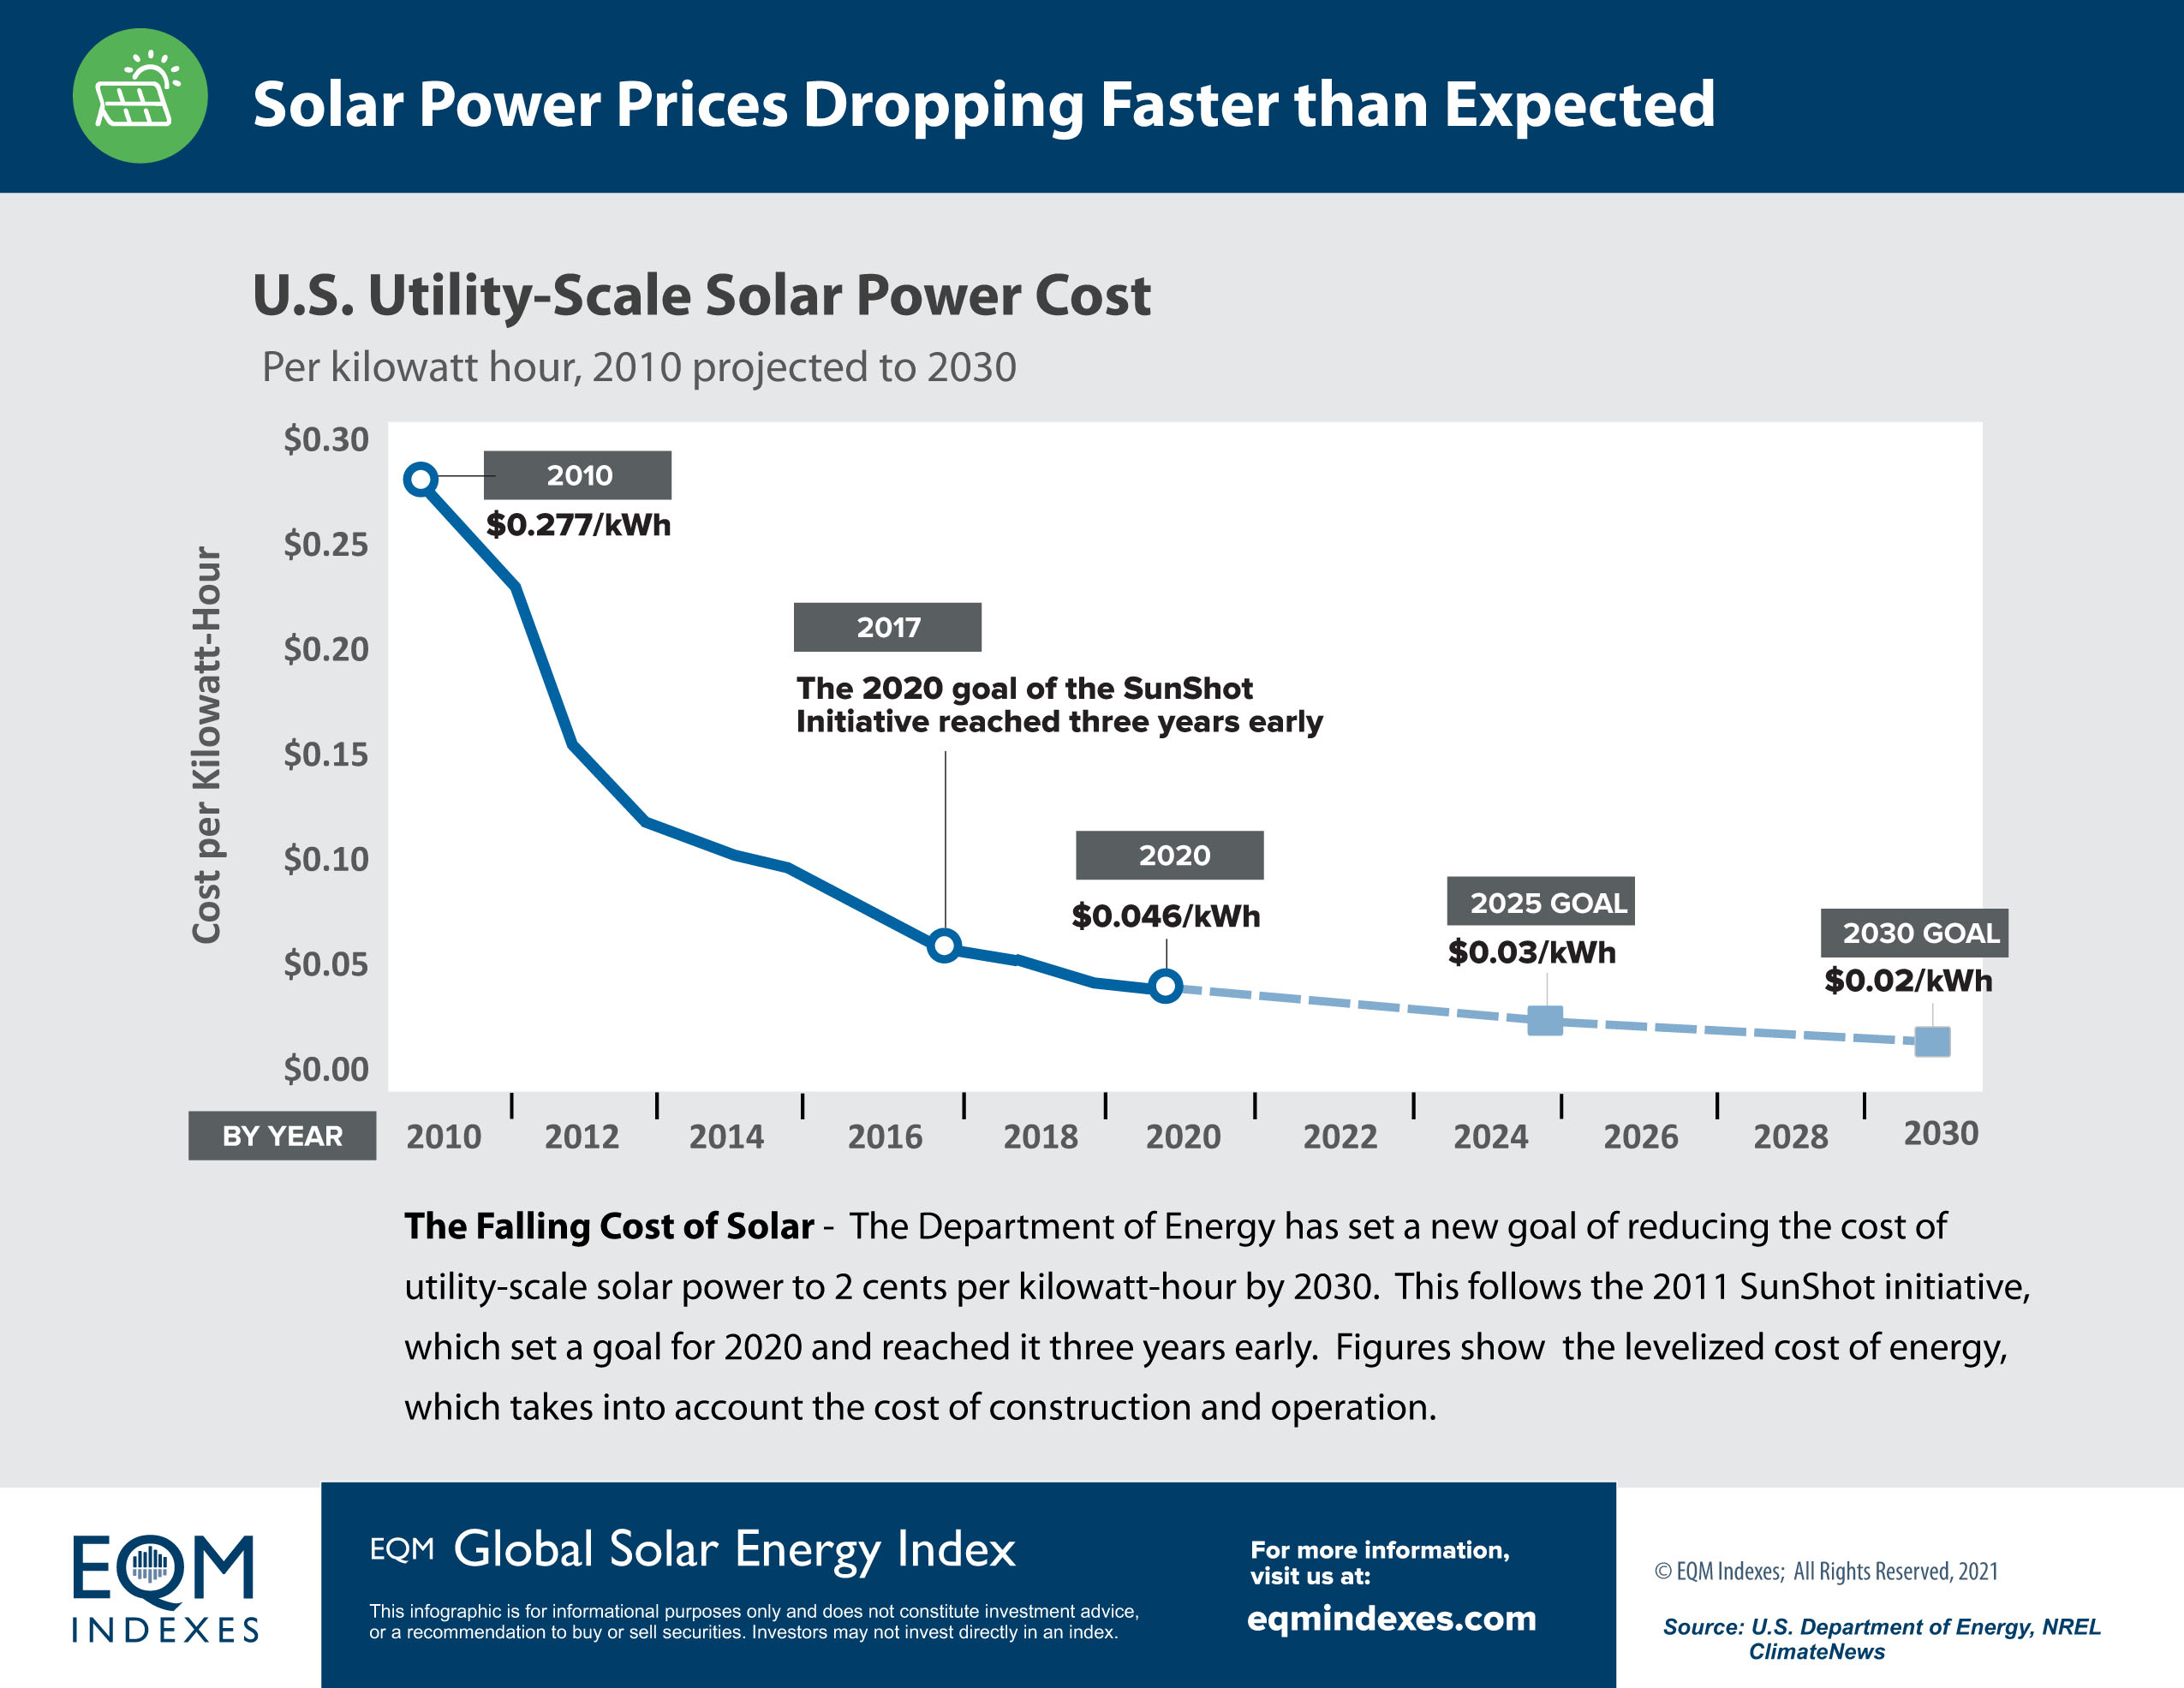 EQM THE FALLING COST OF SOLAR